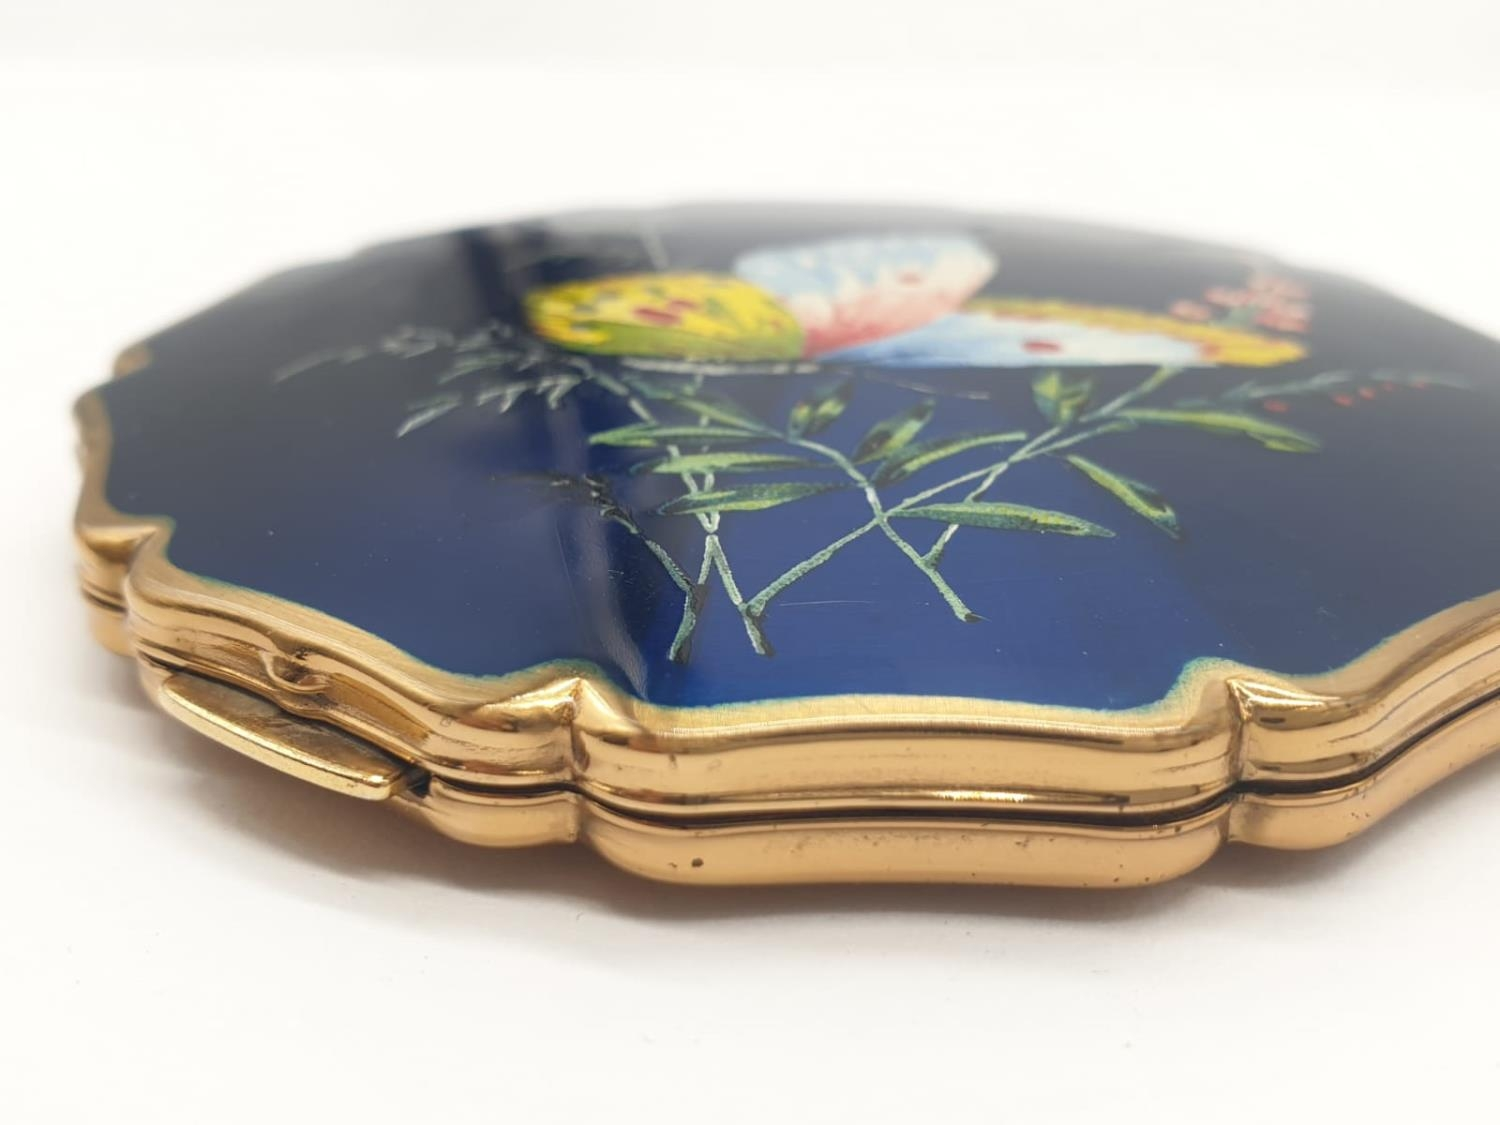 Vintage enamel top Stratton compact (small scratch on top) A.F - Image 7 of 7